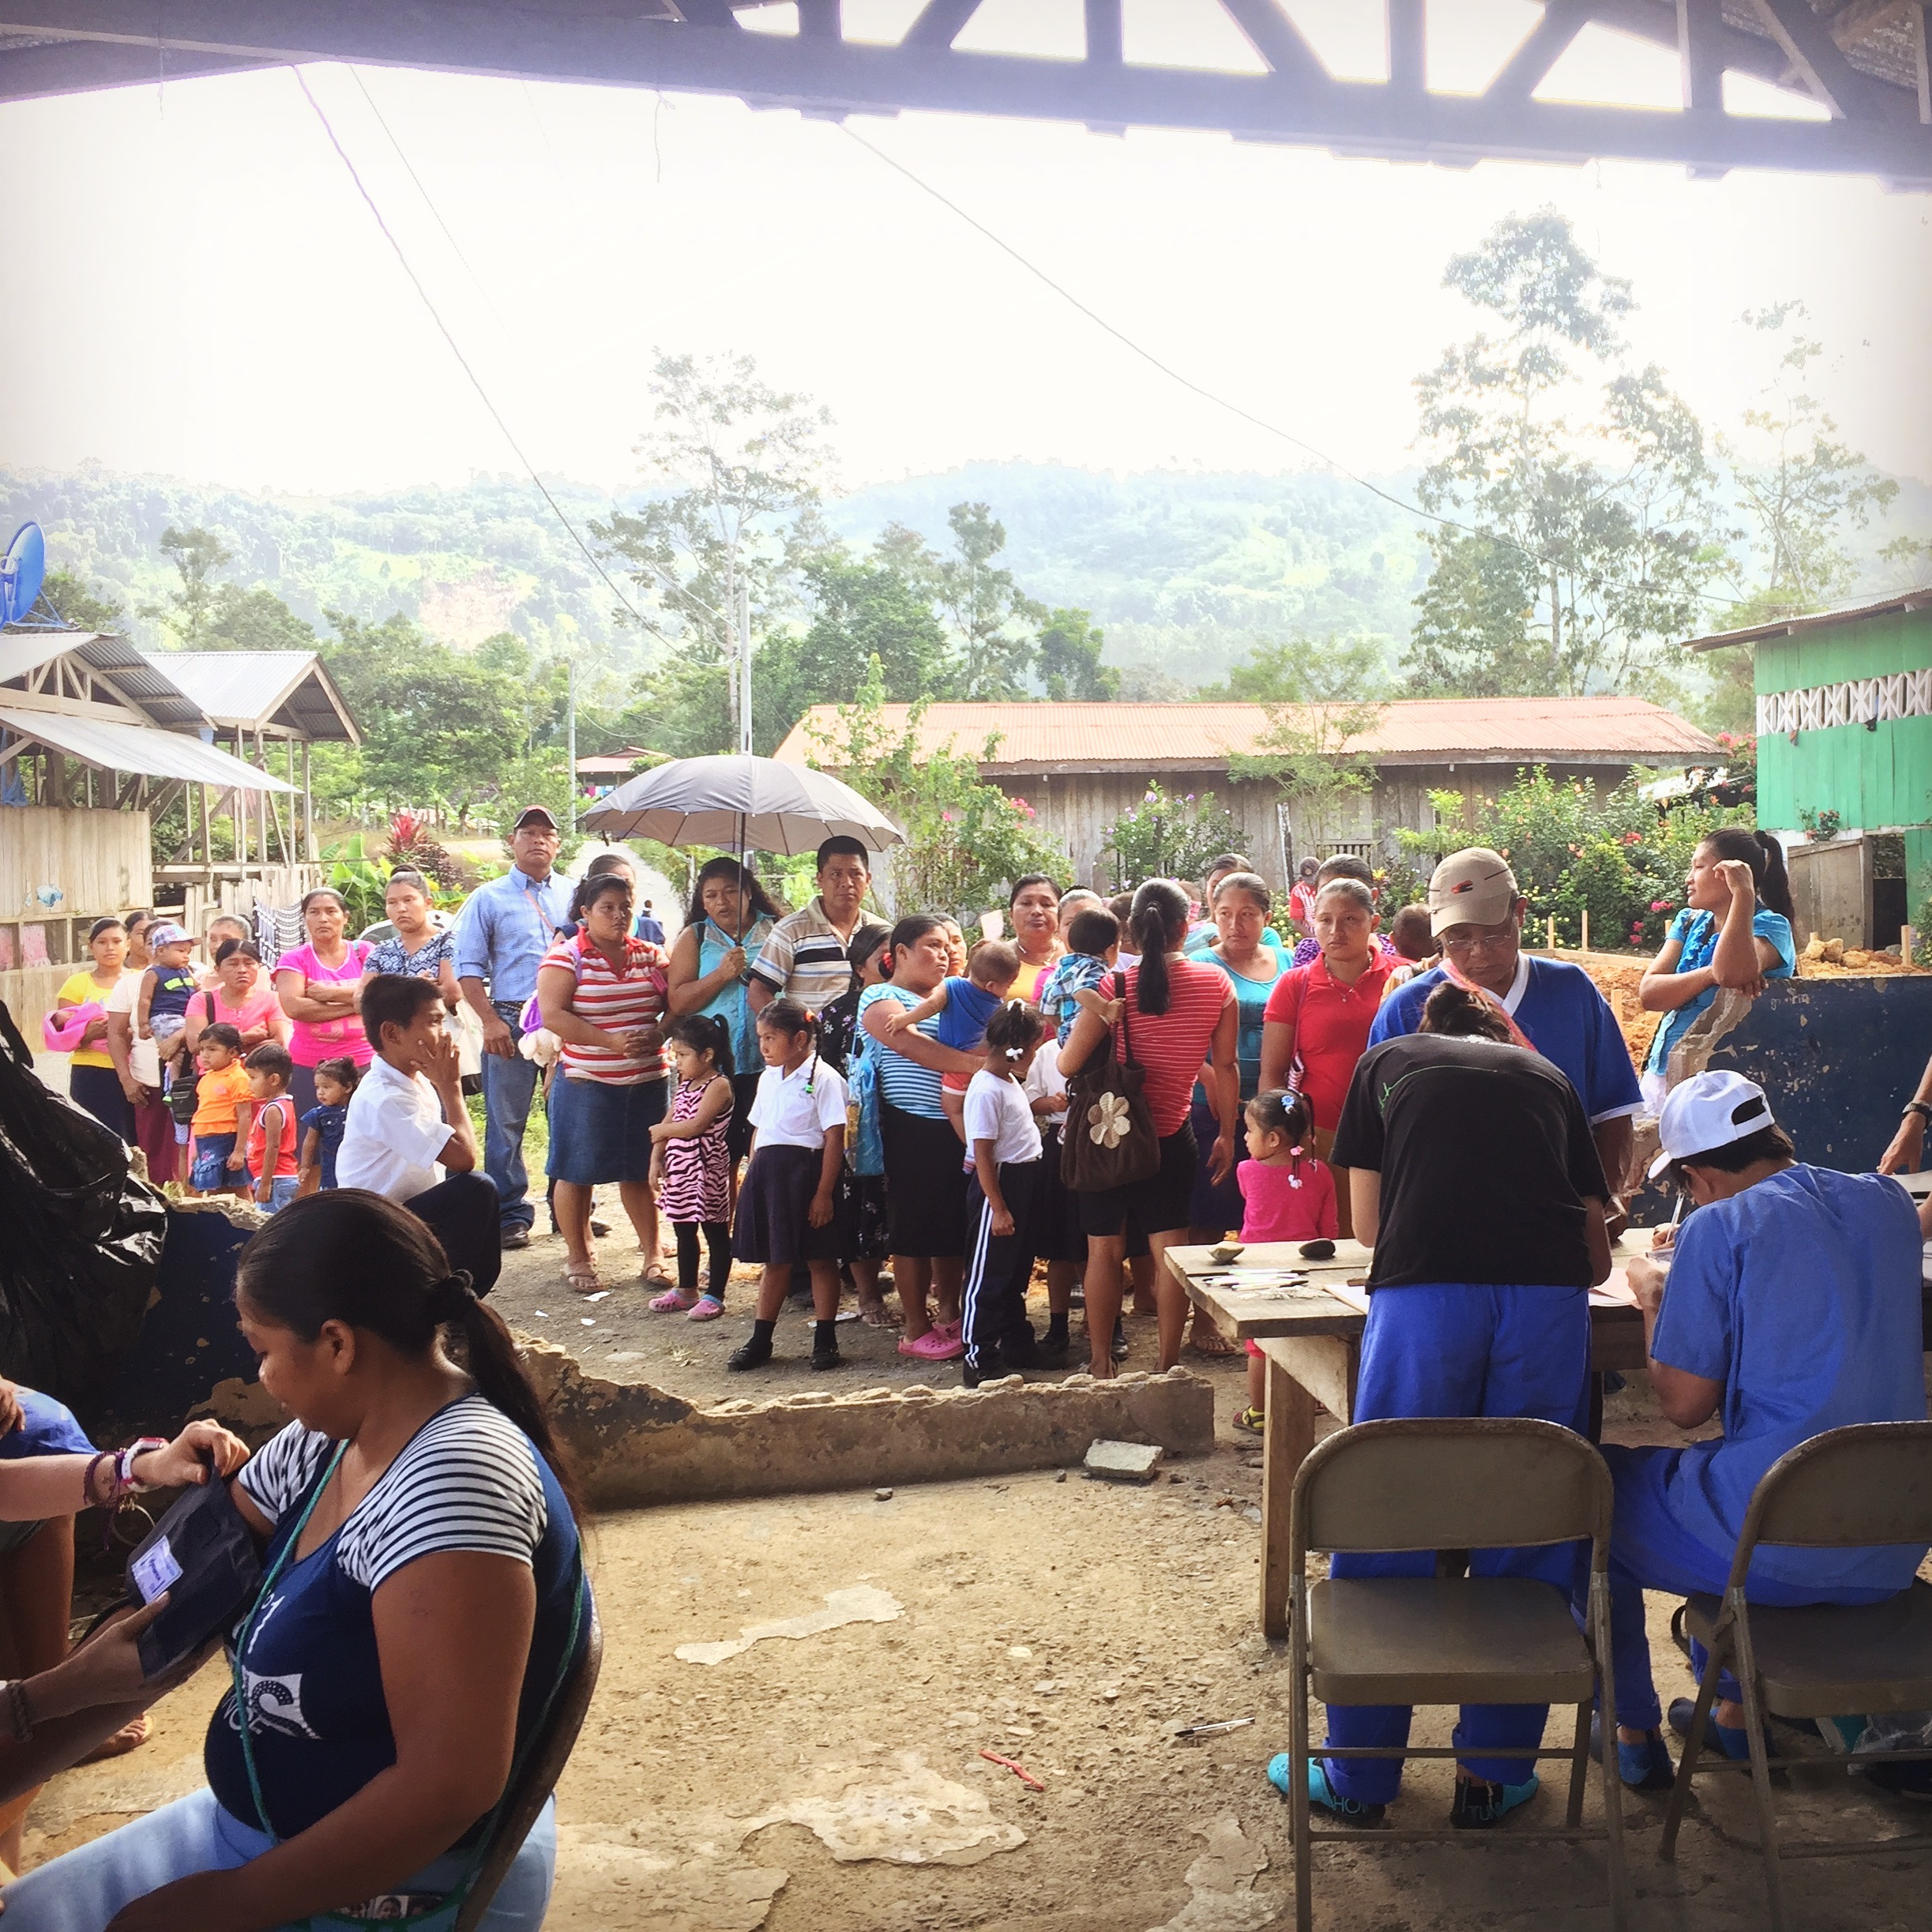 The line of people at the Cerro Brujo clinic.